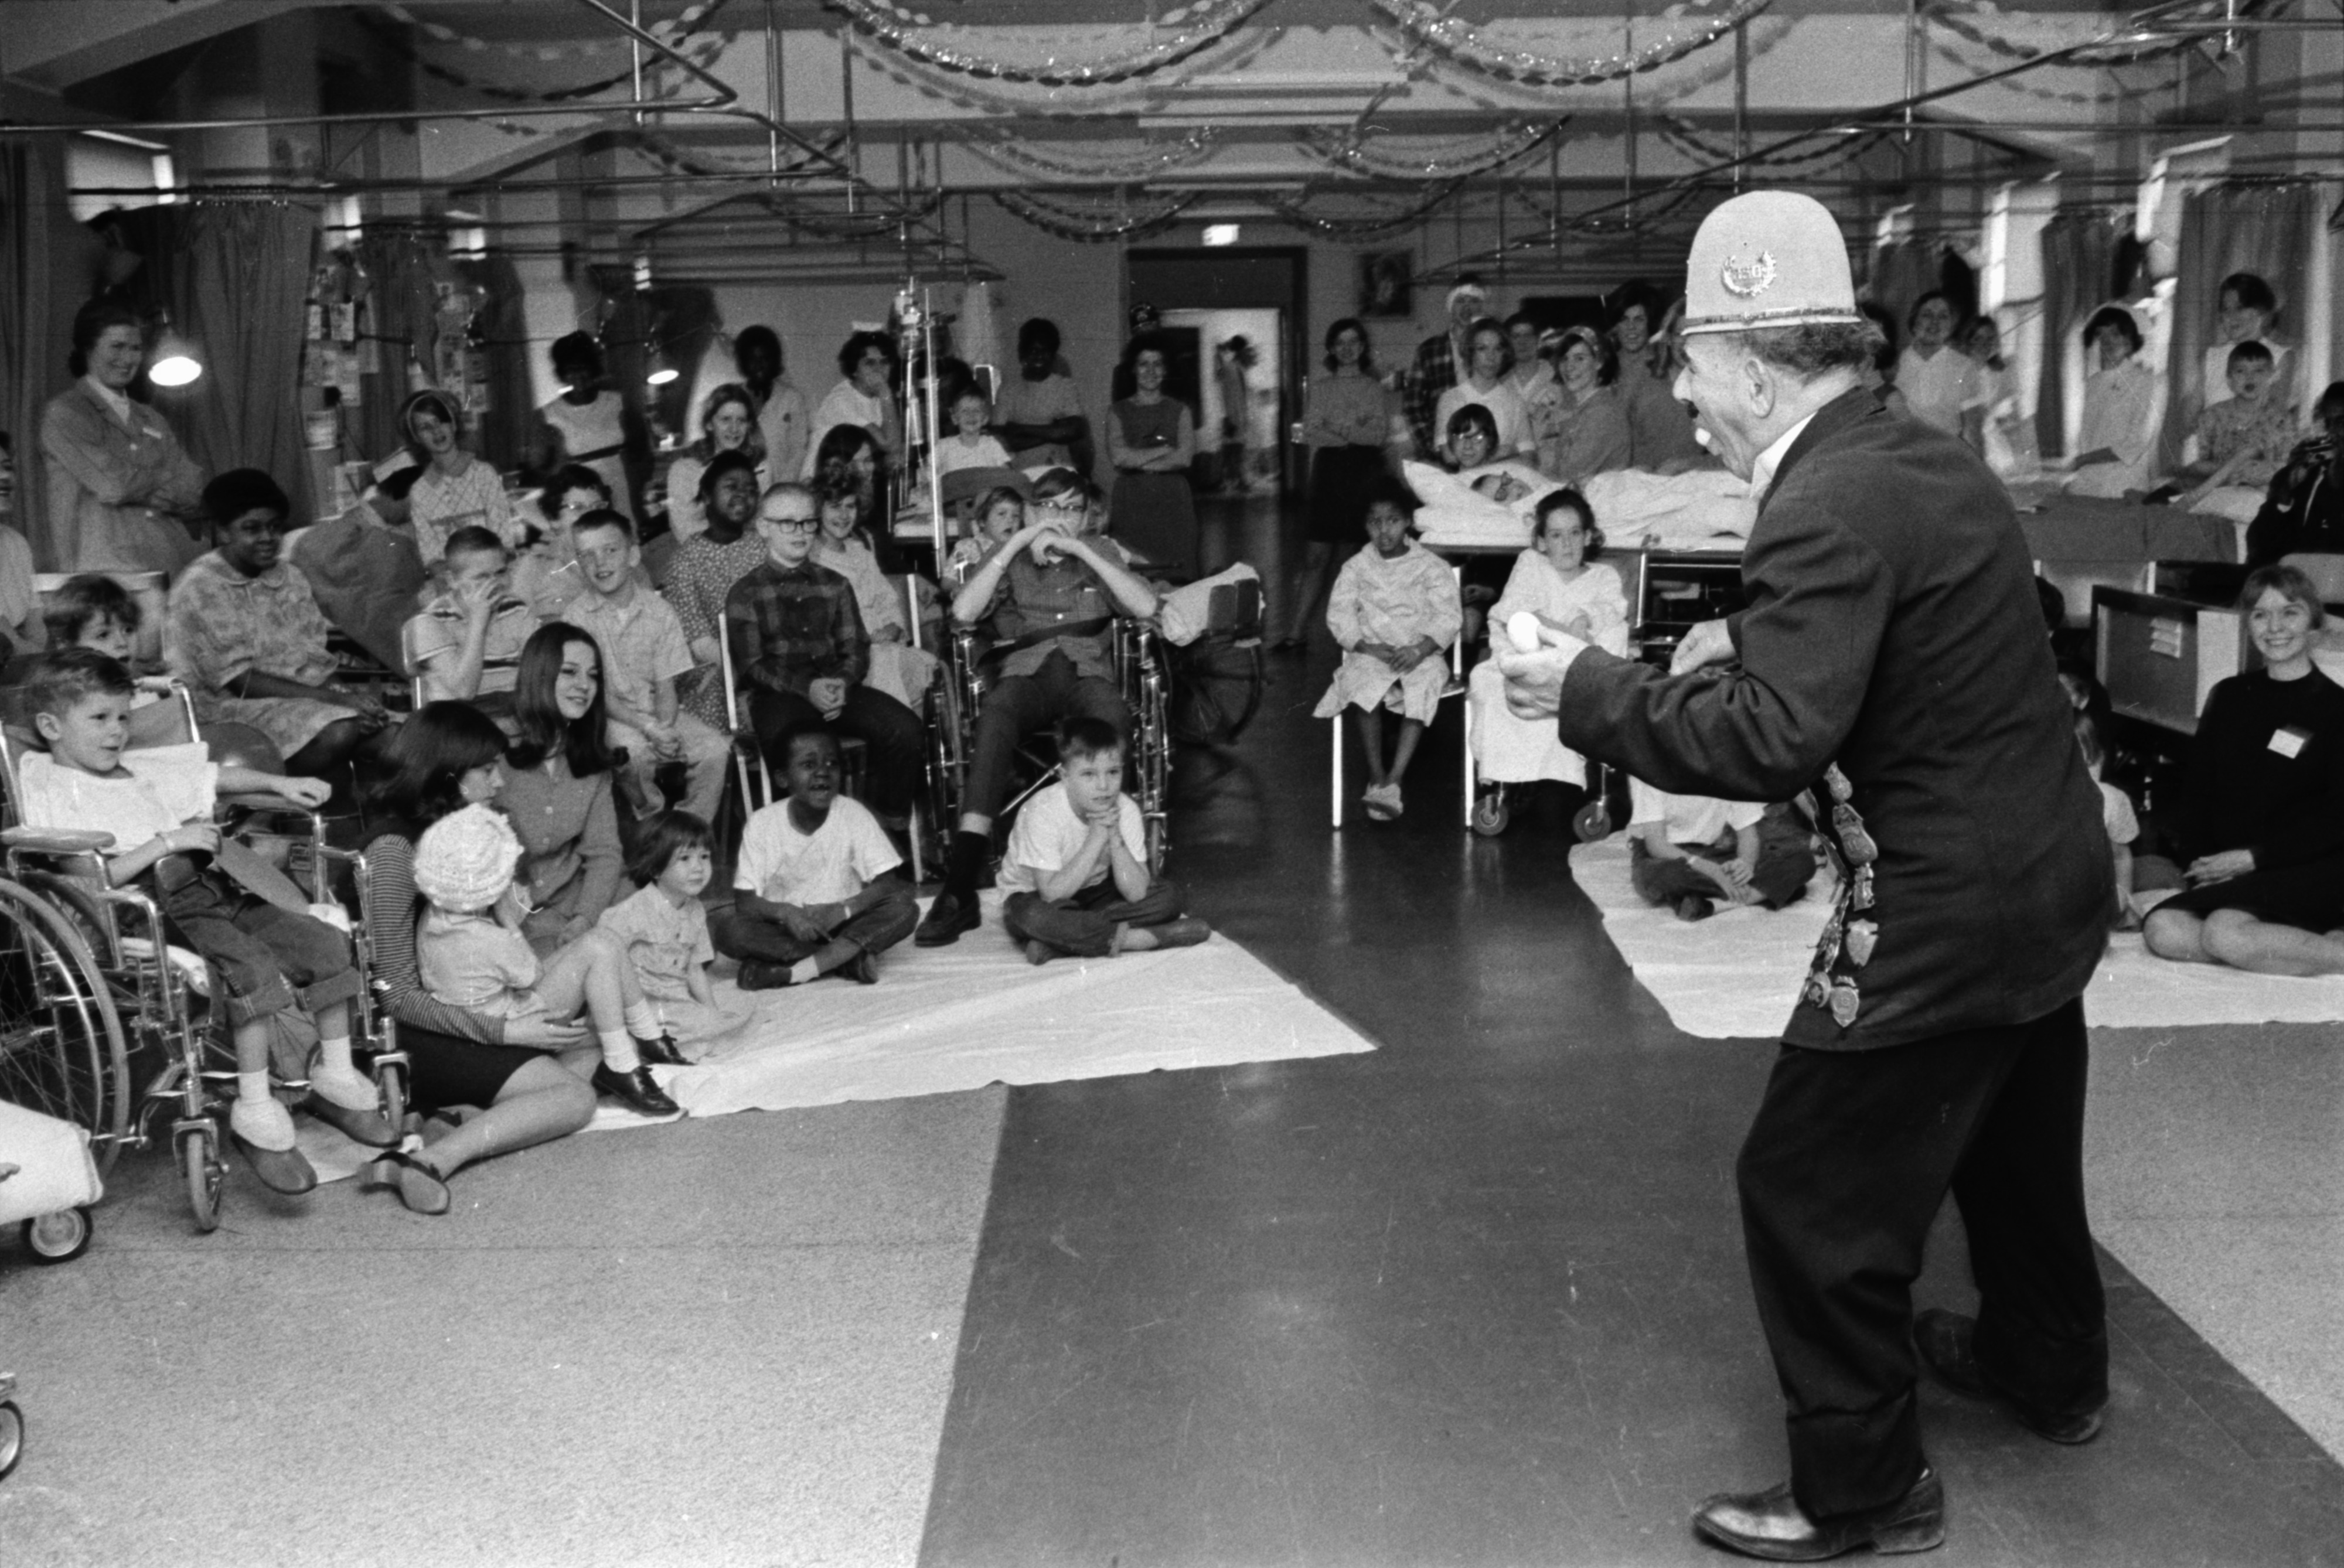 A clown from the Shrine Circus entertains kids at University Hospital, February 1969 image